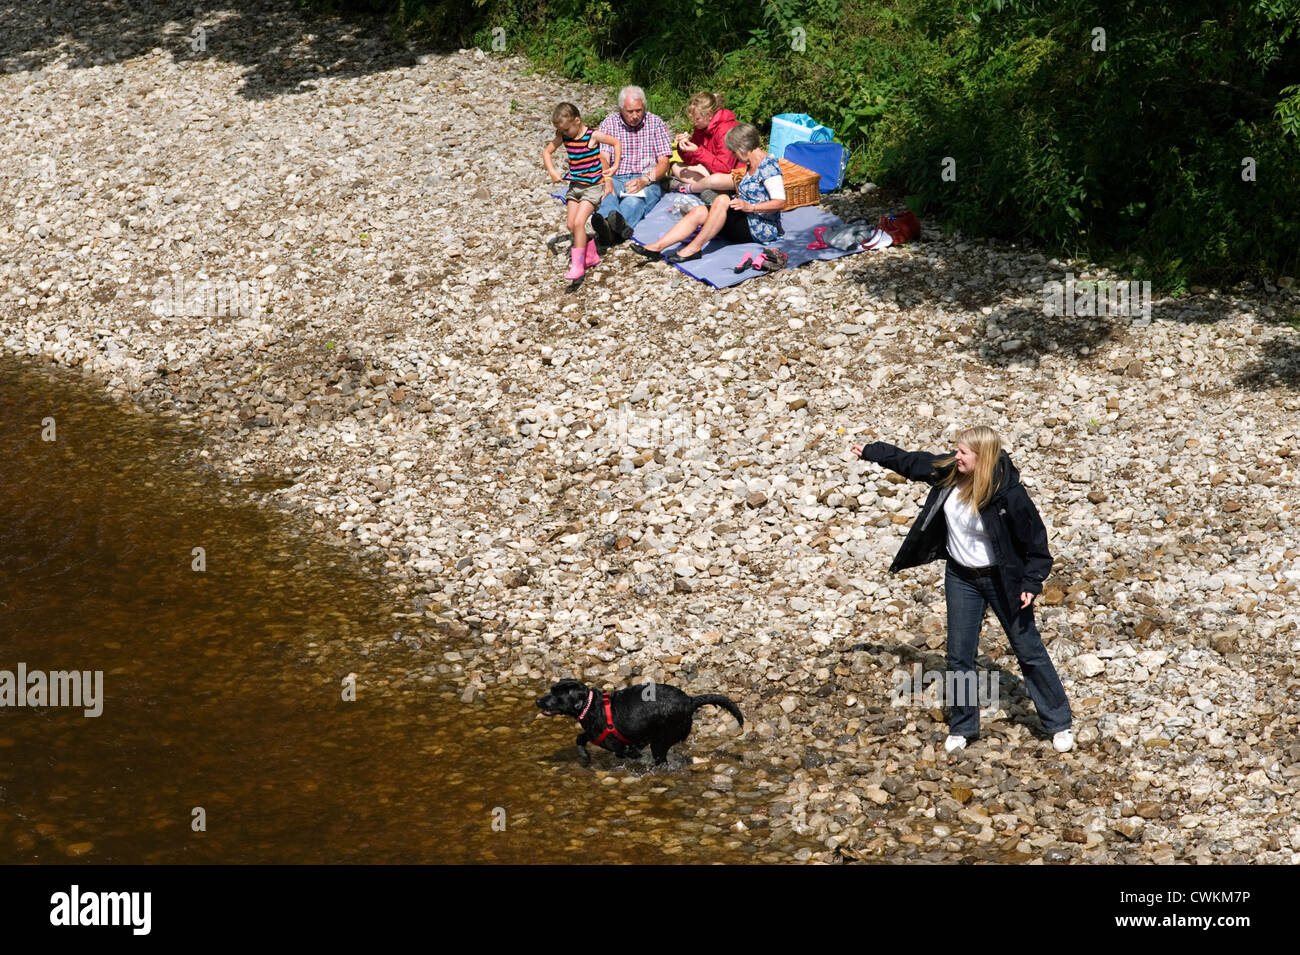 young woman on river bank throwing a stick into the water for her dog to retrieve watched by family having picnic - Stock Image